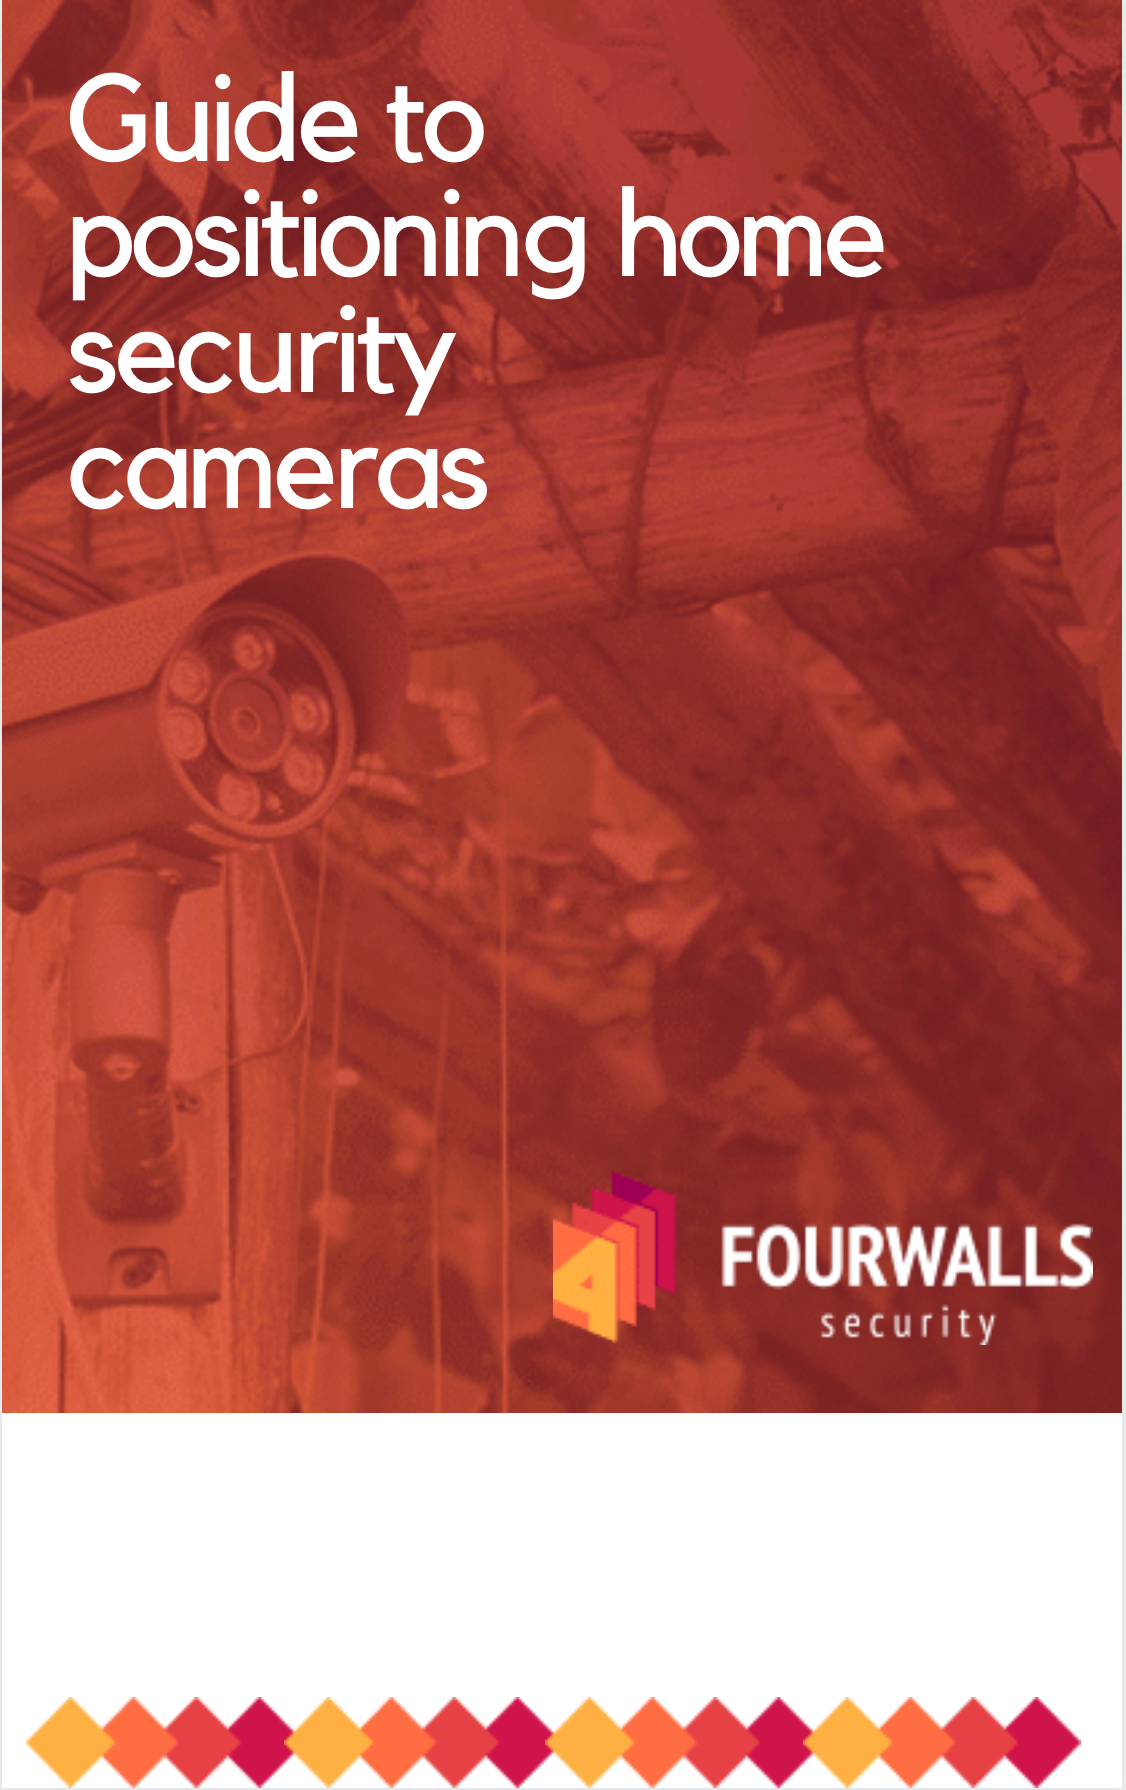 Guide to positioning home security cameras